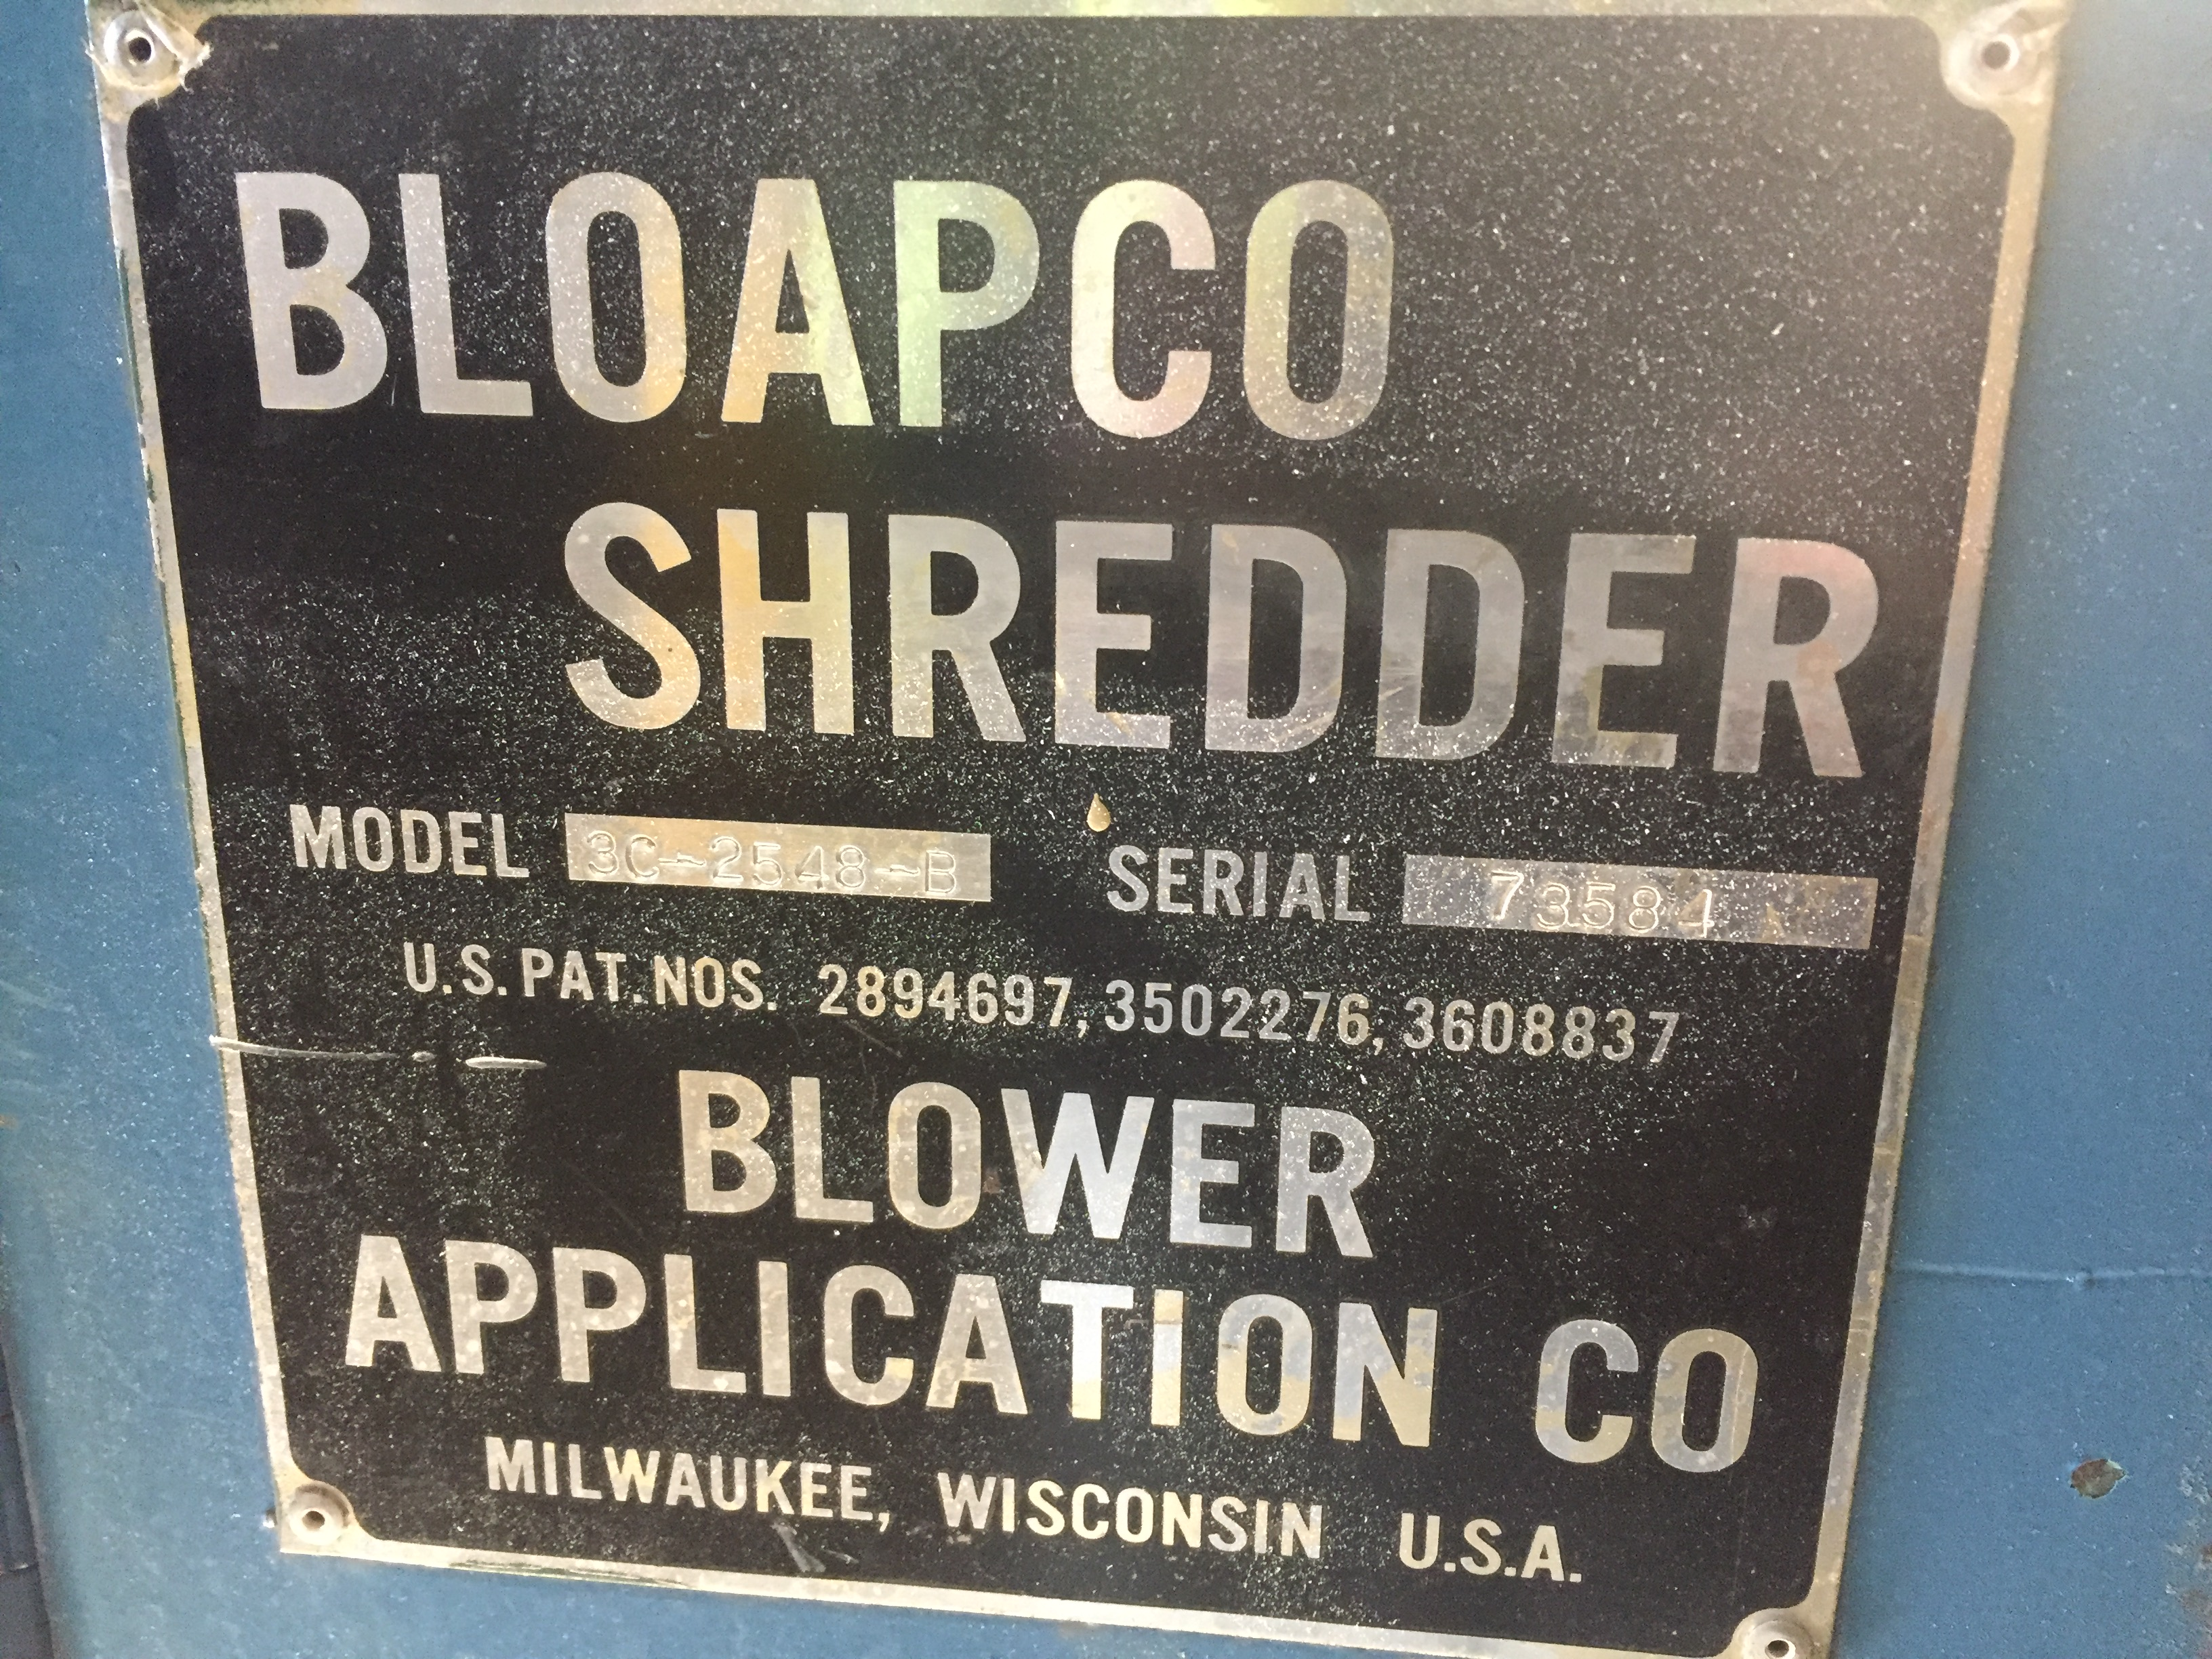 """BLOAPCO (MODEL #3C-2548-B) SHREDDER WITH 1"""" CORES AND CARDBOARD - SERIAL #73584 - Image 3 of 5"""